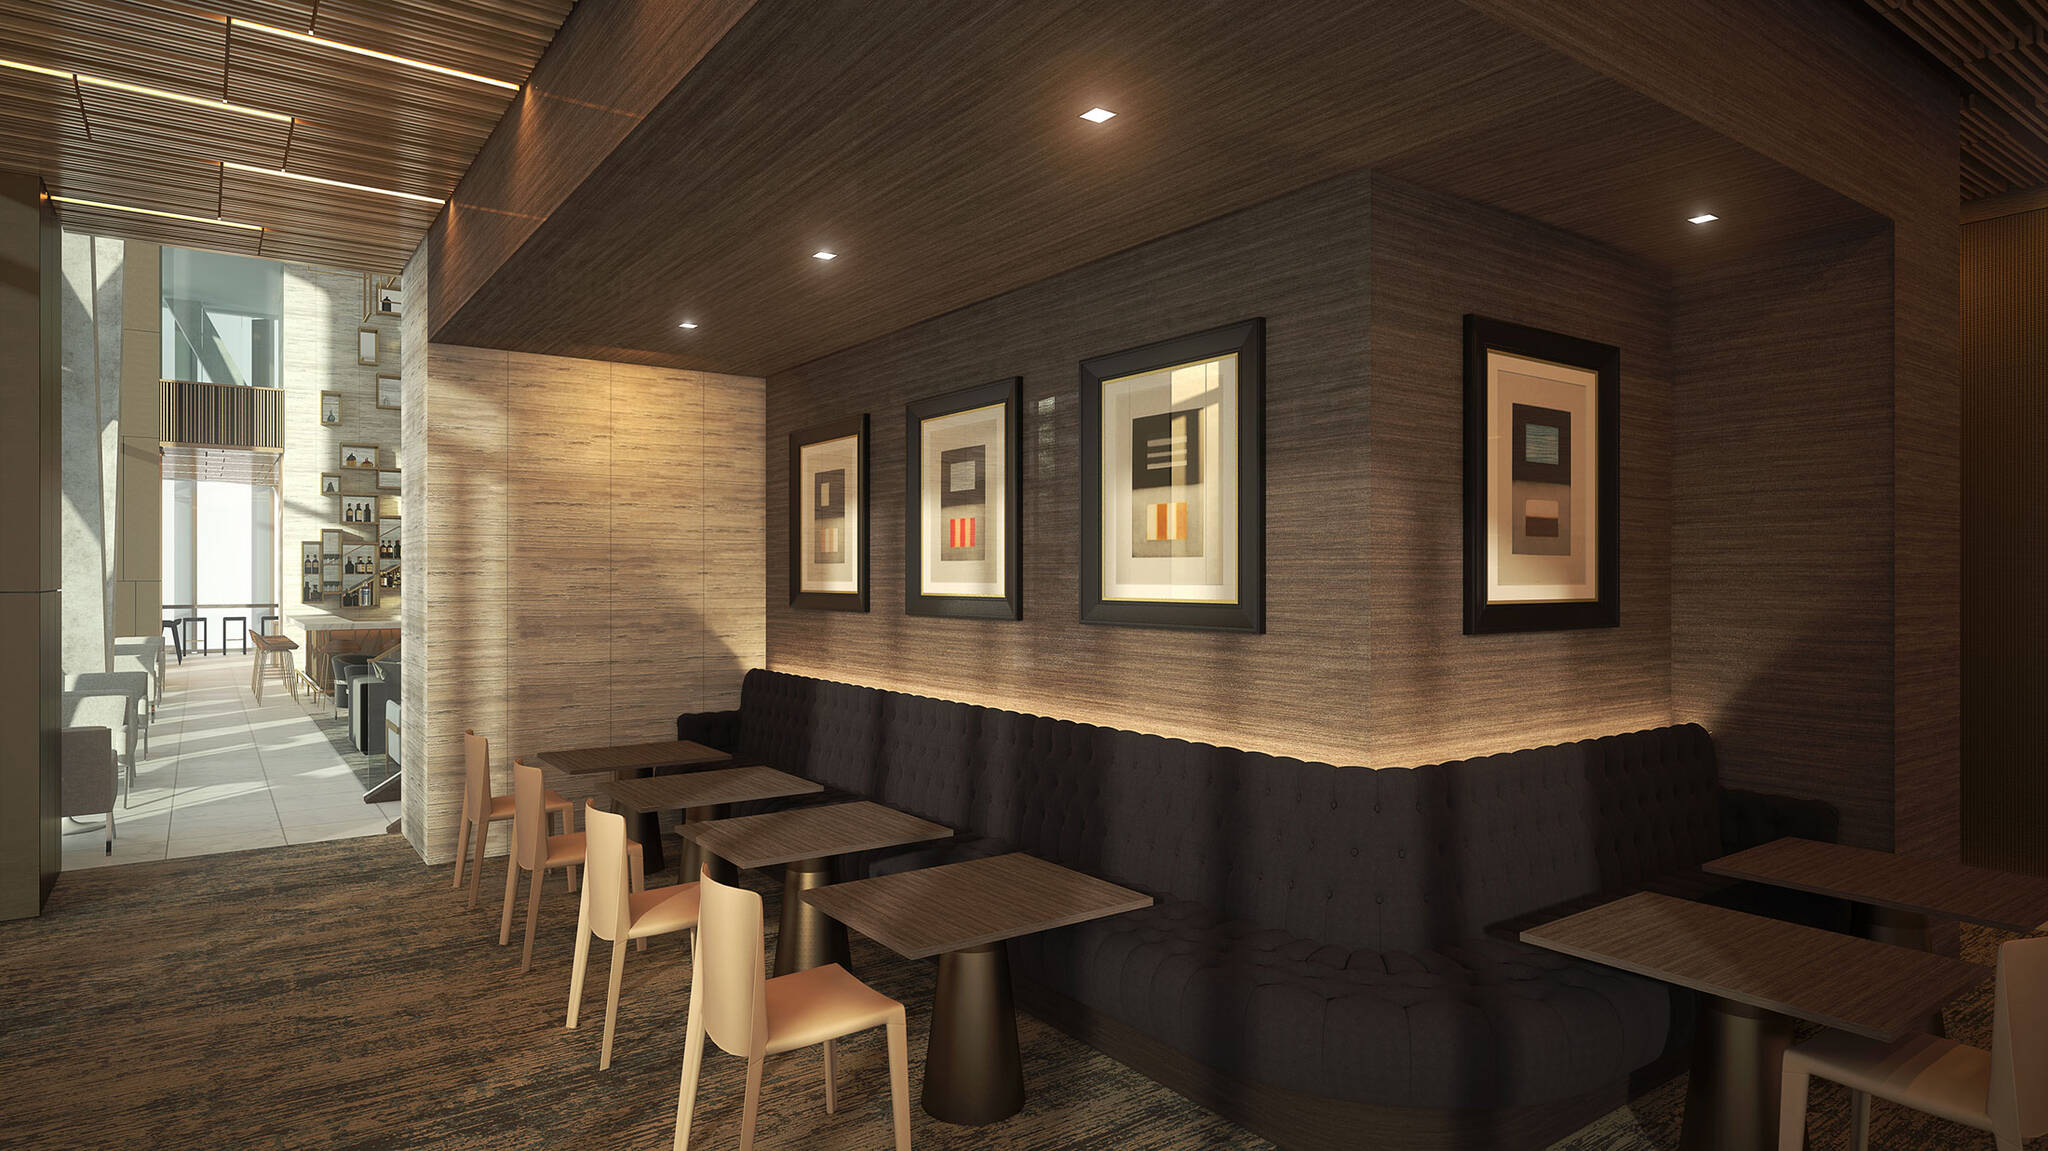 Banquette seating area of the Hudson Yards Autograph Hotel project by Marriott, a modular hotel tower located at 432 West 31st Street in Hudson Yards, New York City designed by the architecture studio Danny Forster & Architecture